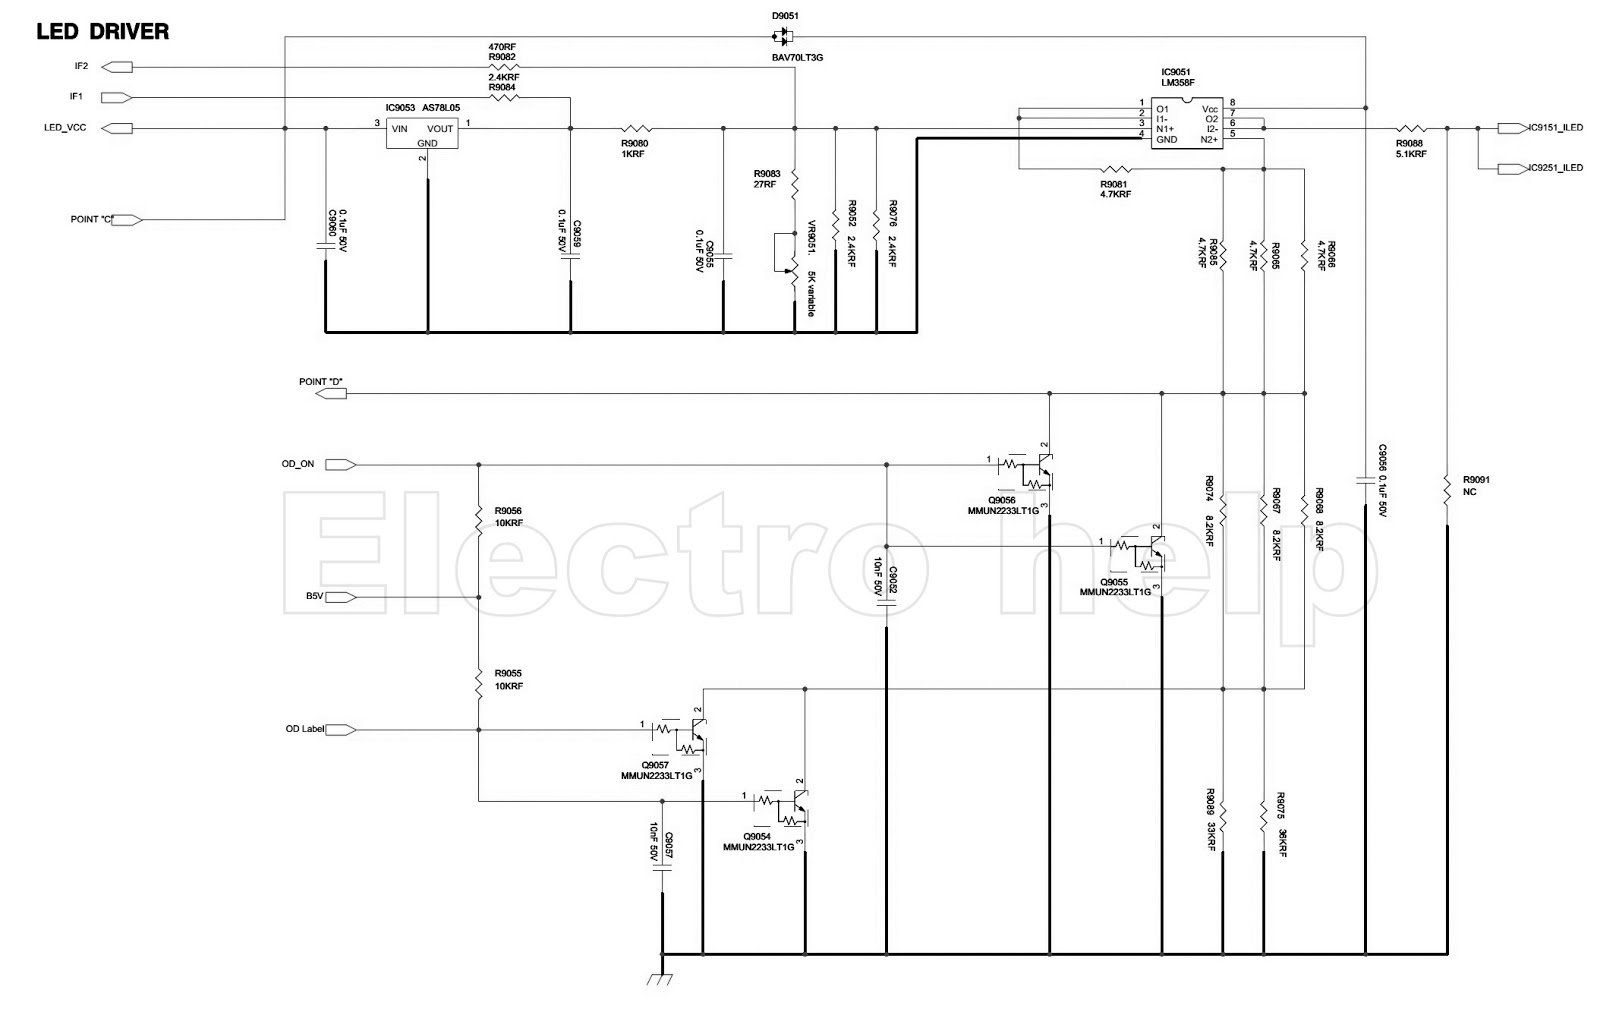 Samsung Bn44 00428b - Led Lcd Tv Smps Circuit Diagram - With Back-light Led Driver